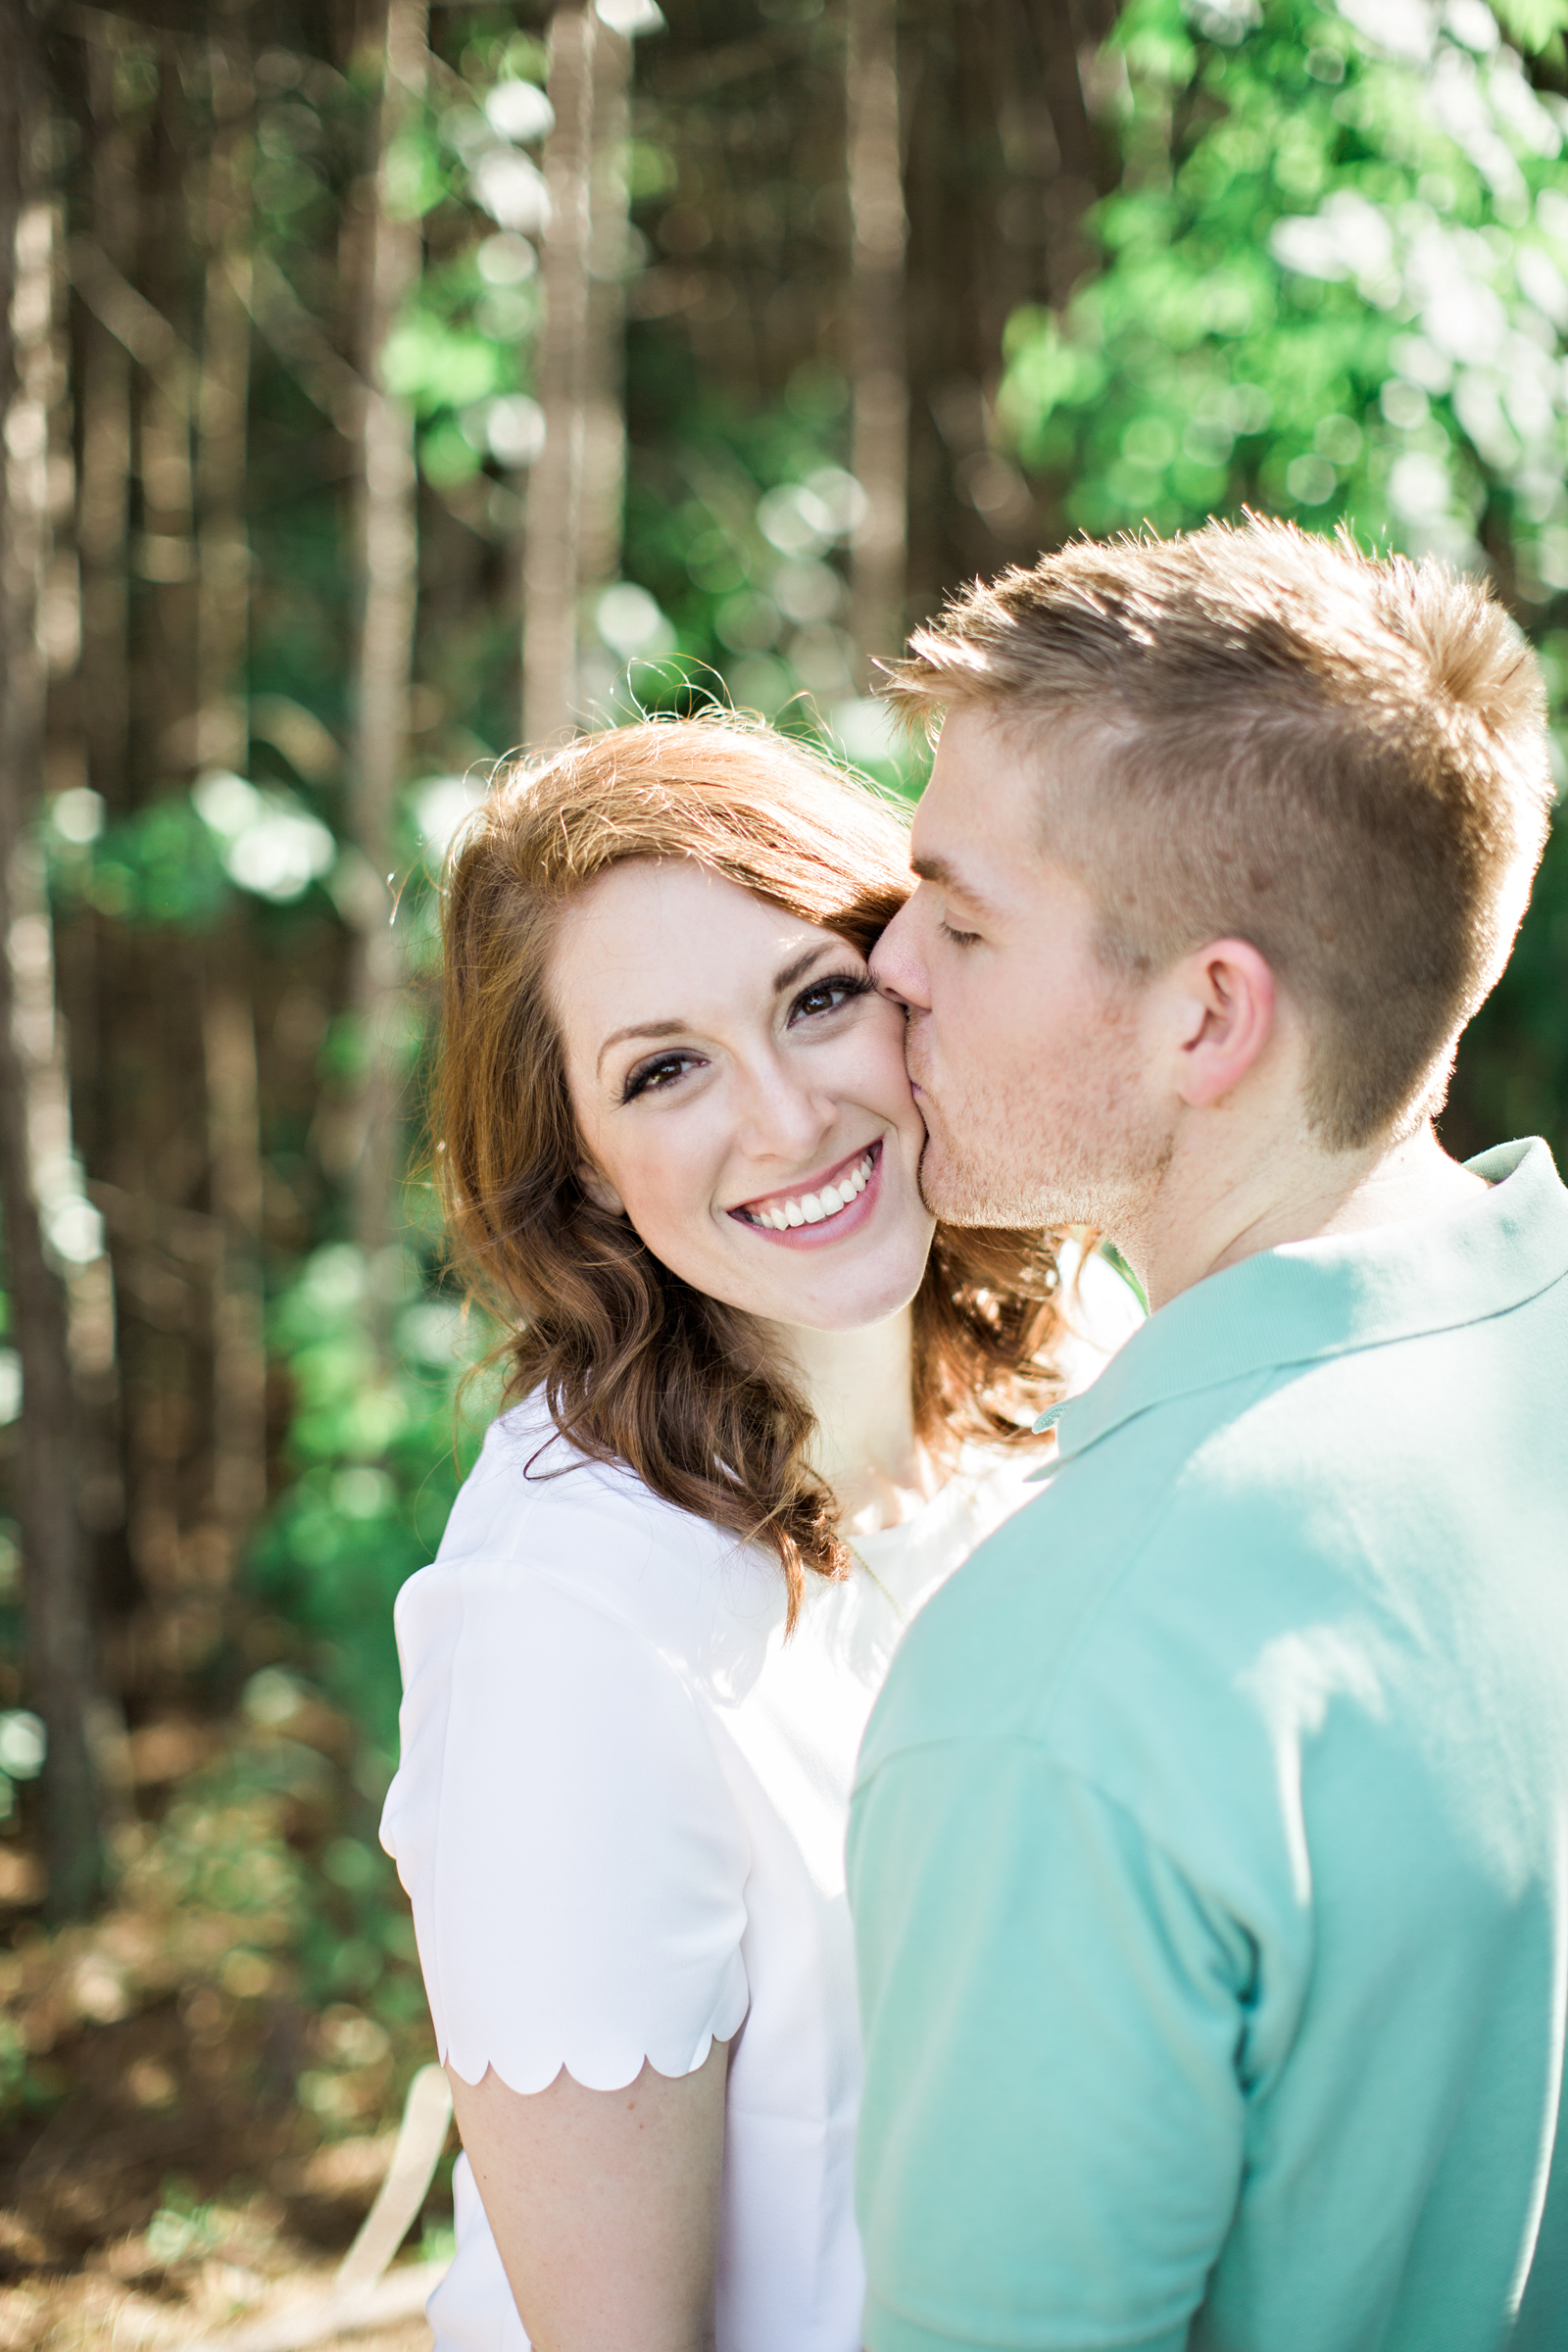 Nick-Drollette-Photography-Alabama-Engagements-Birmingham-Shelby-Logan-119.jpg